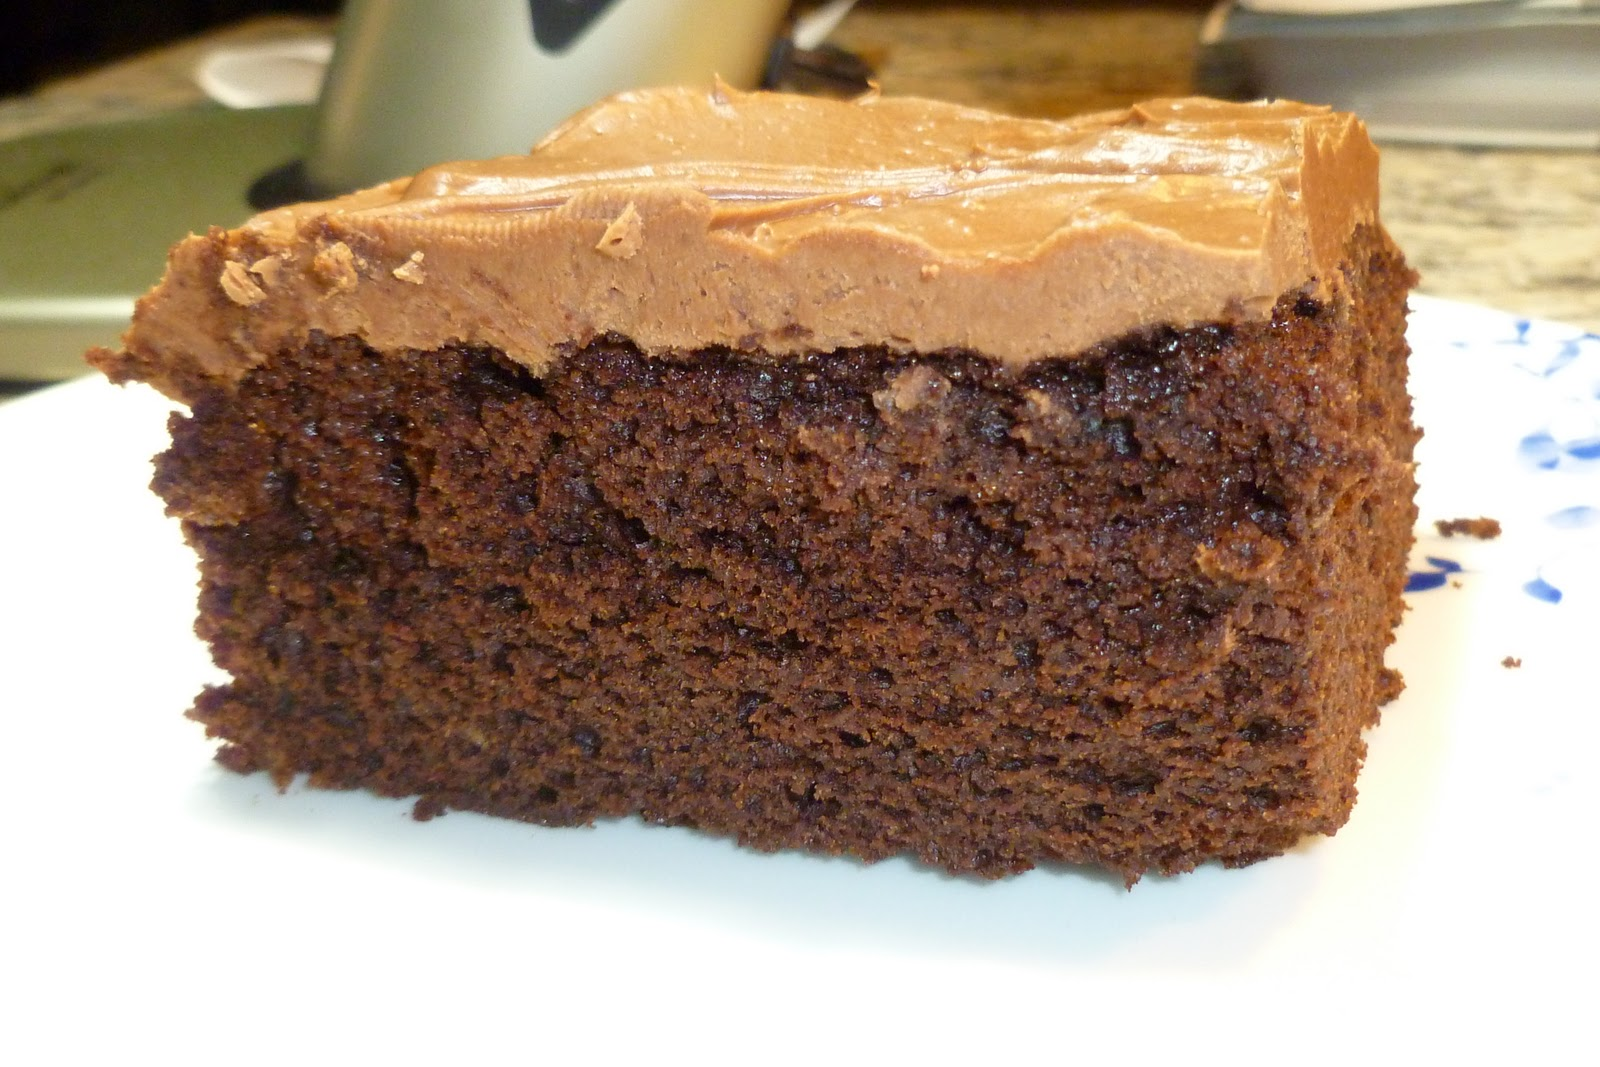 ... chocolate cake day so of course i have to post a chocolate cake recipe